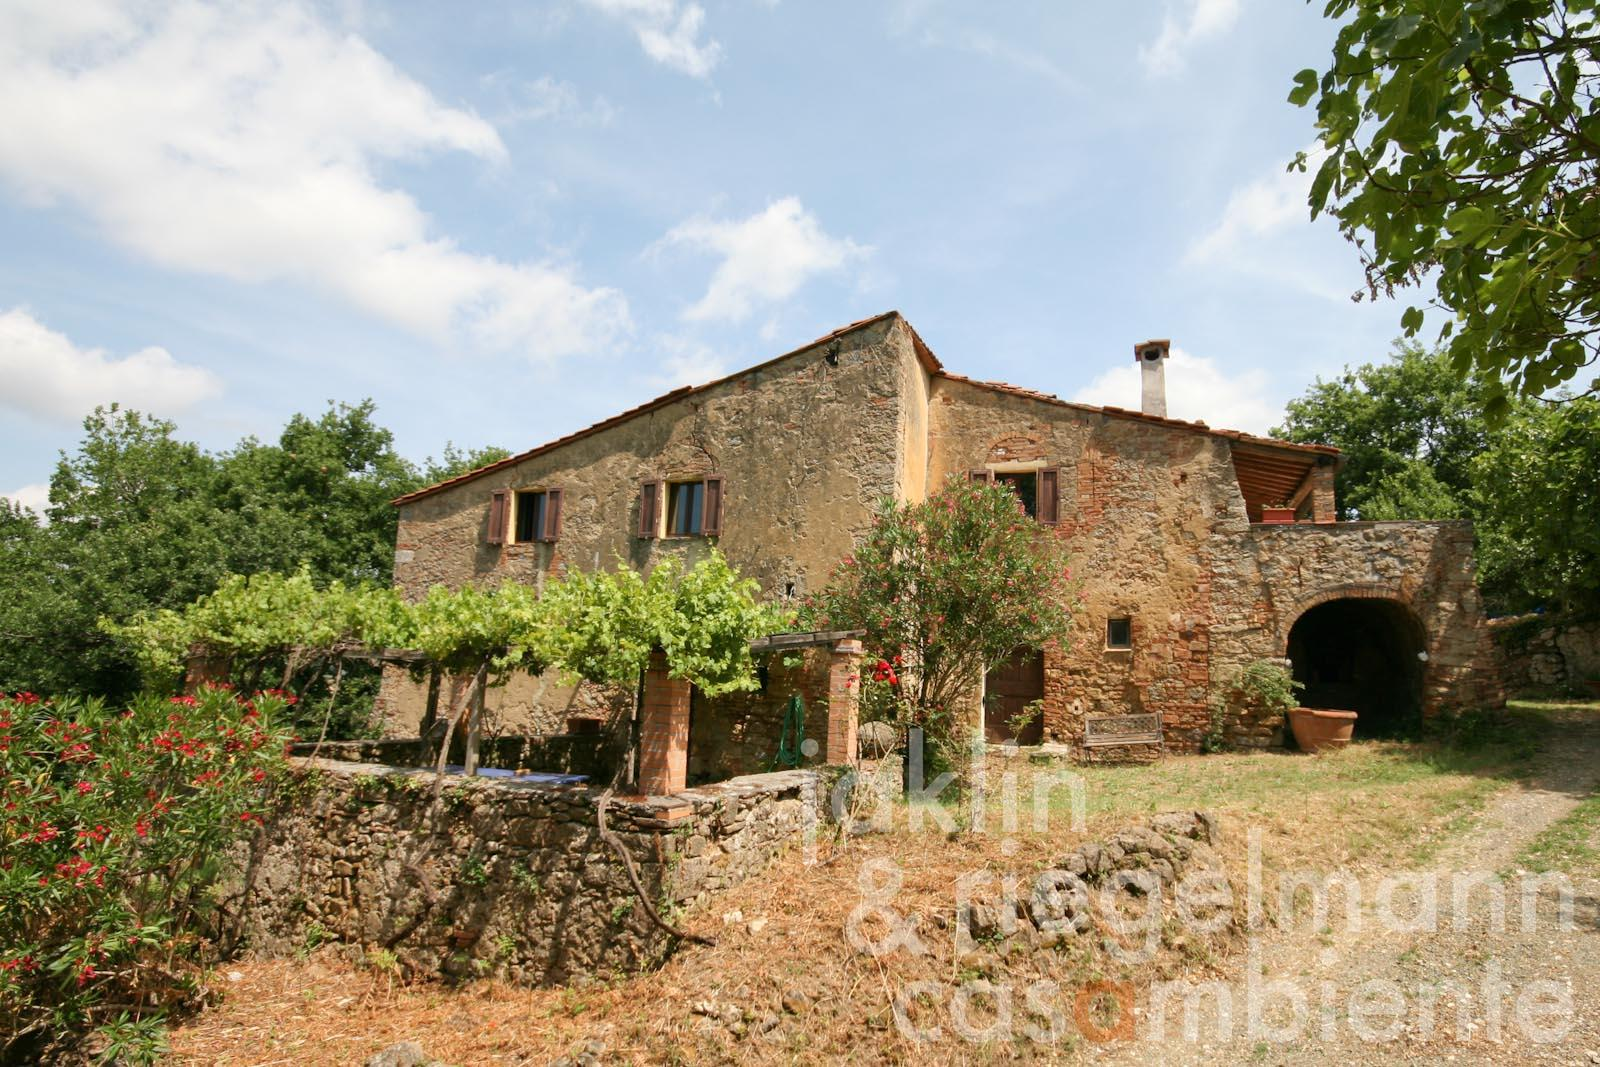 The Tuscan country house to restore with two annexe buildings close to Volterra